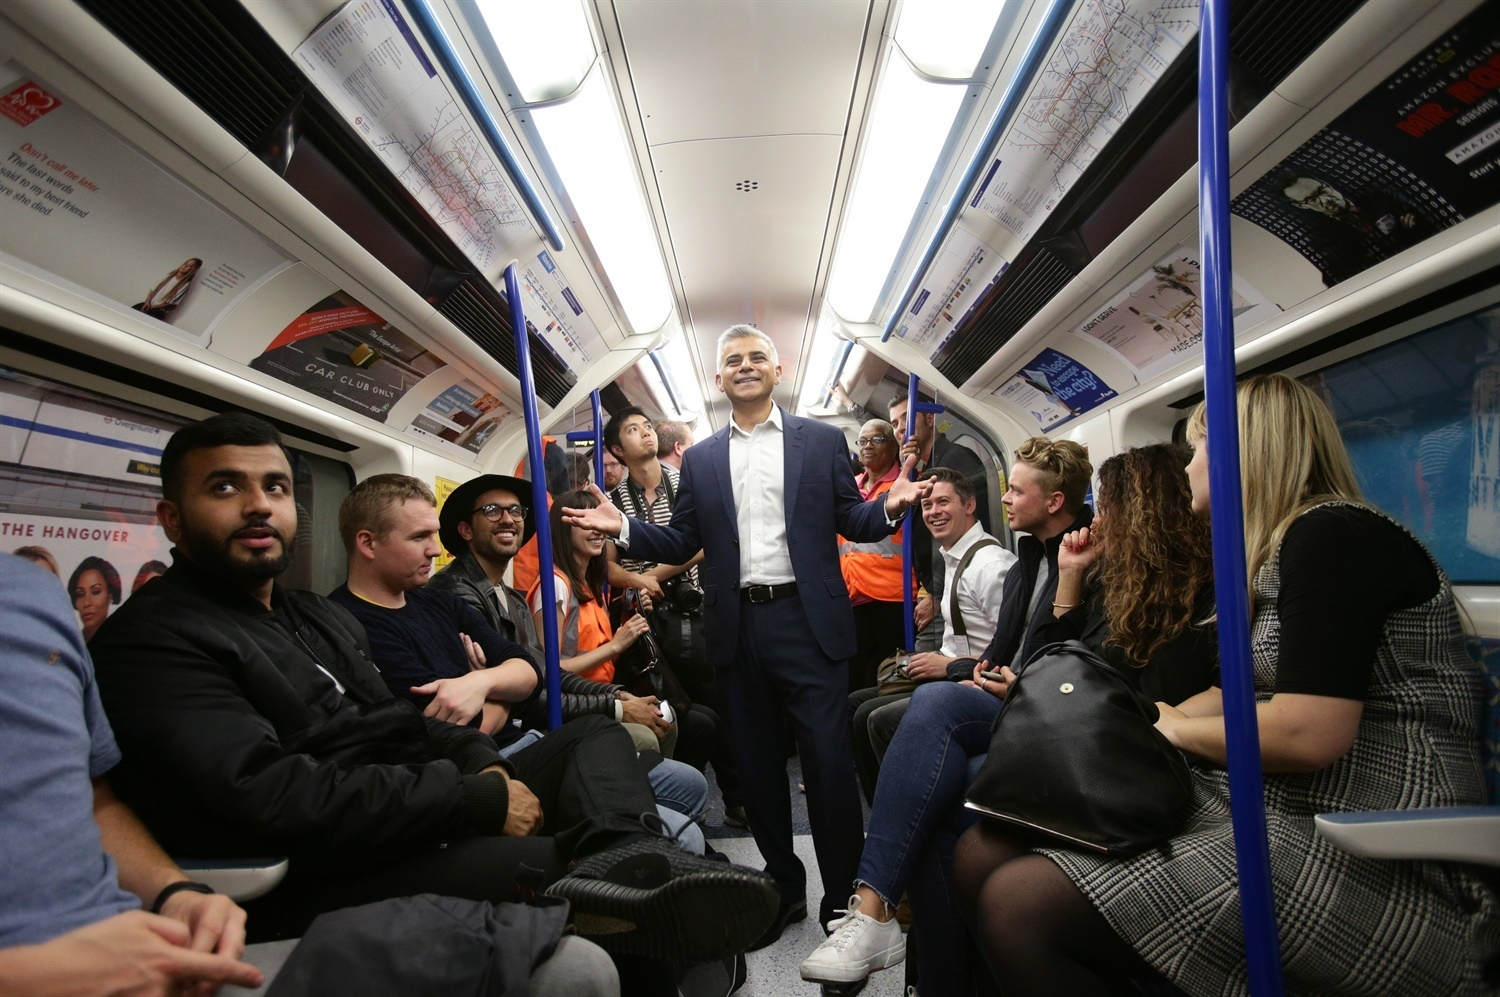 Financial investigation casts doubt over TfL pledges